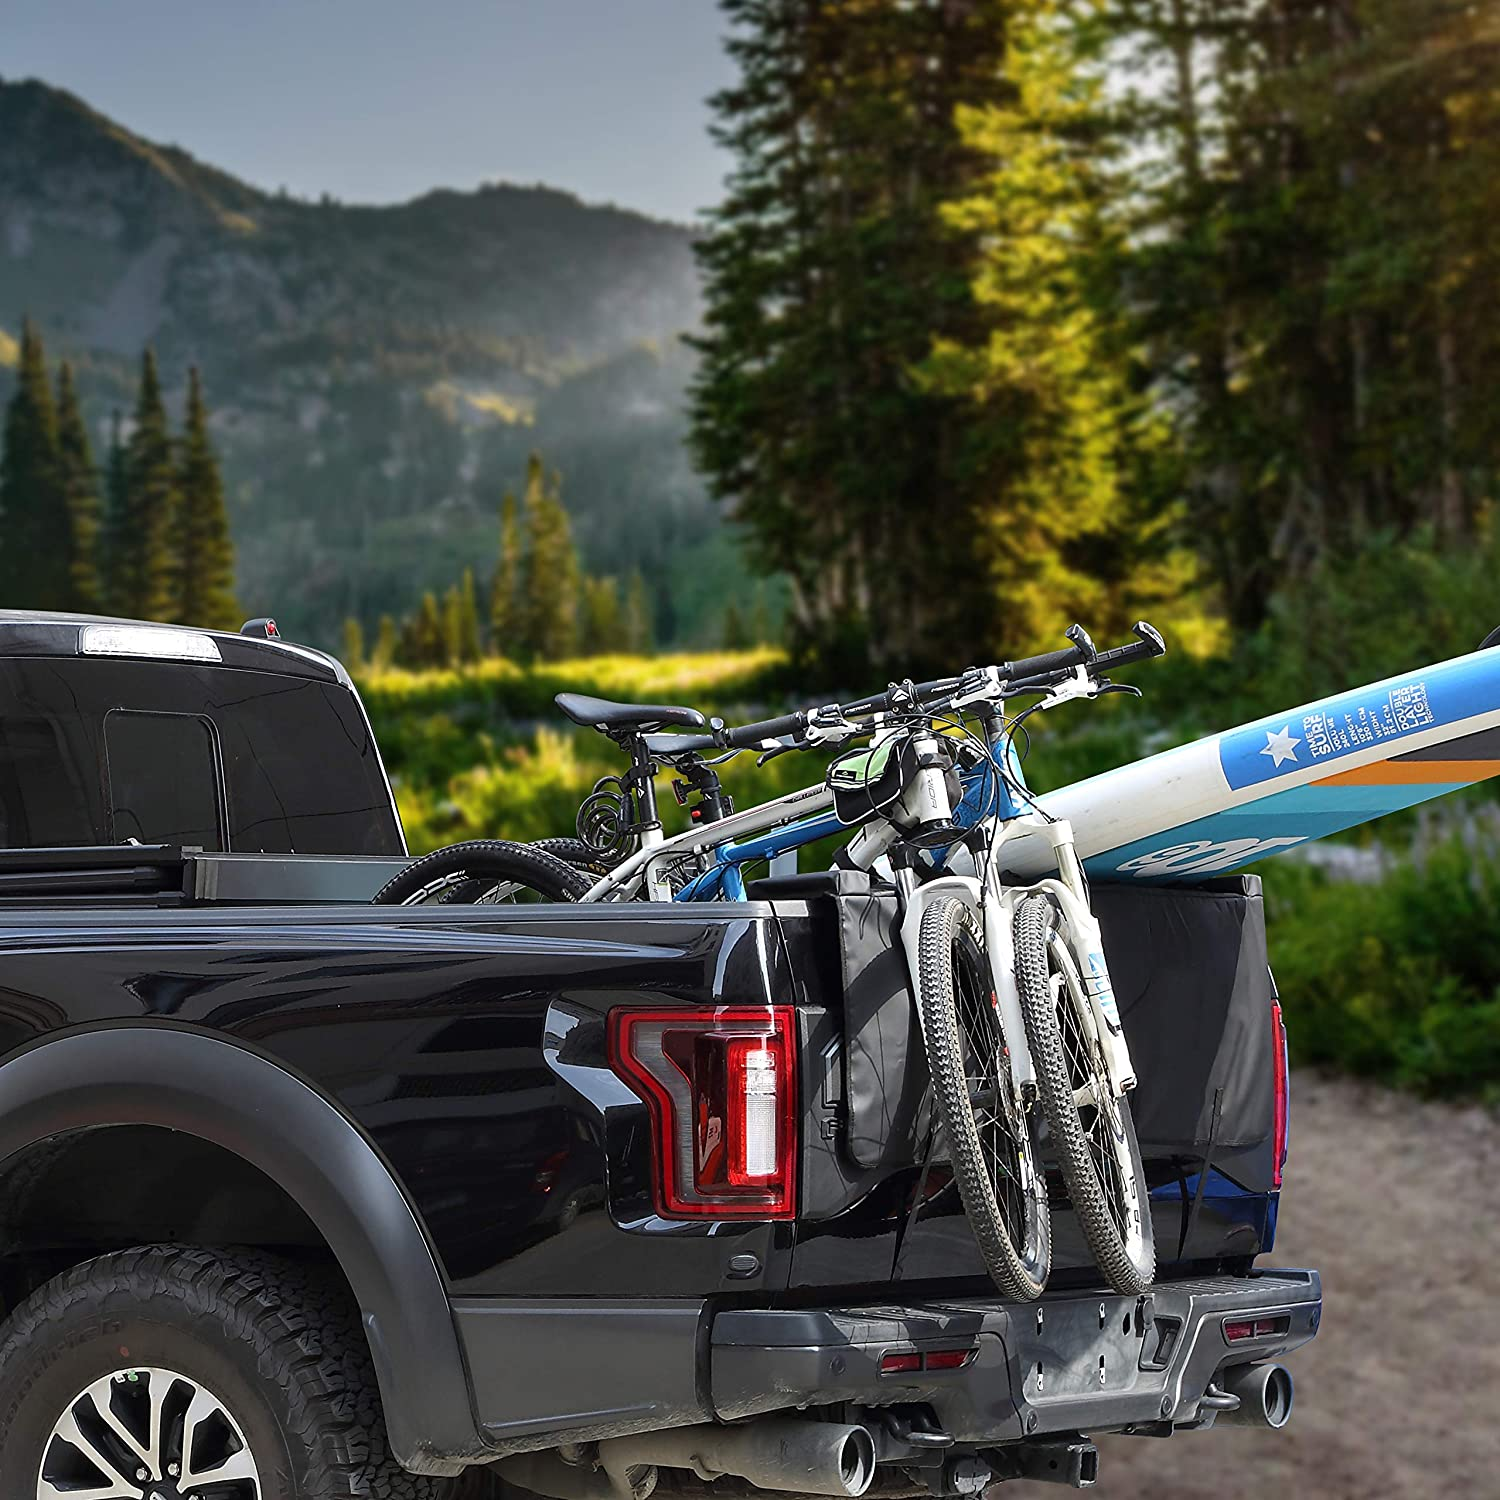 Mgradic 54 Truck pickup Tailgate pads surfboard bike rack with 5 pionts for Bicycle Payload